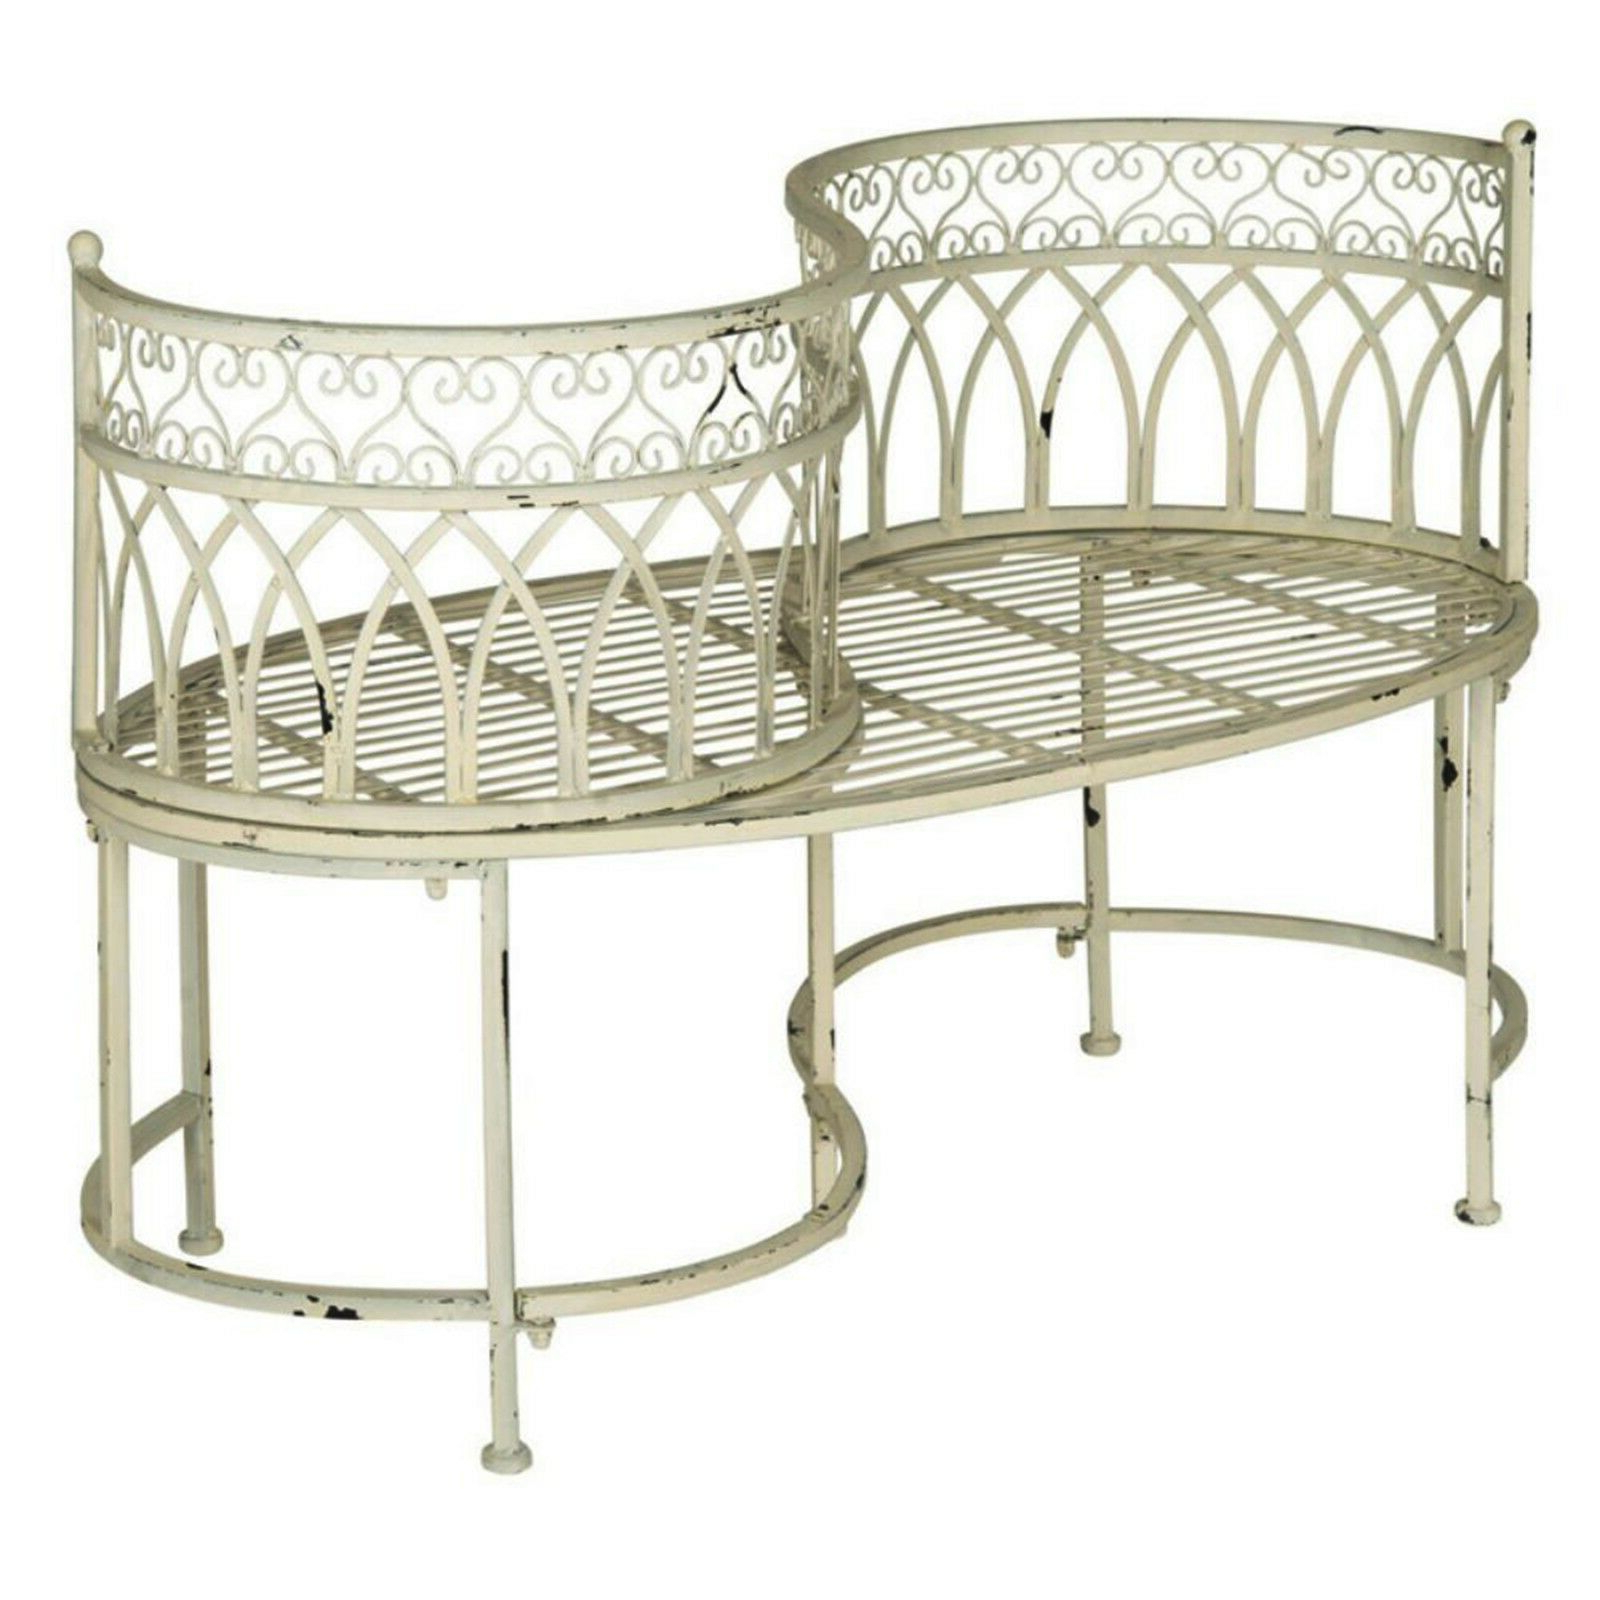 Details About Kissing Bench Curved Metal Tete A Tete Garden Chair Outdoor Vintage Patio Seat Within Fashionable Wicker Tete A Tete Benches (View 17 of 30)